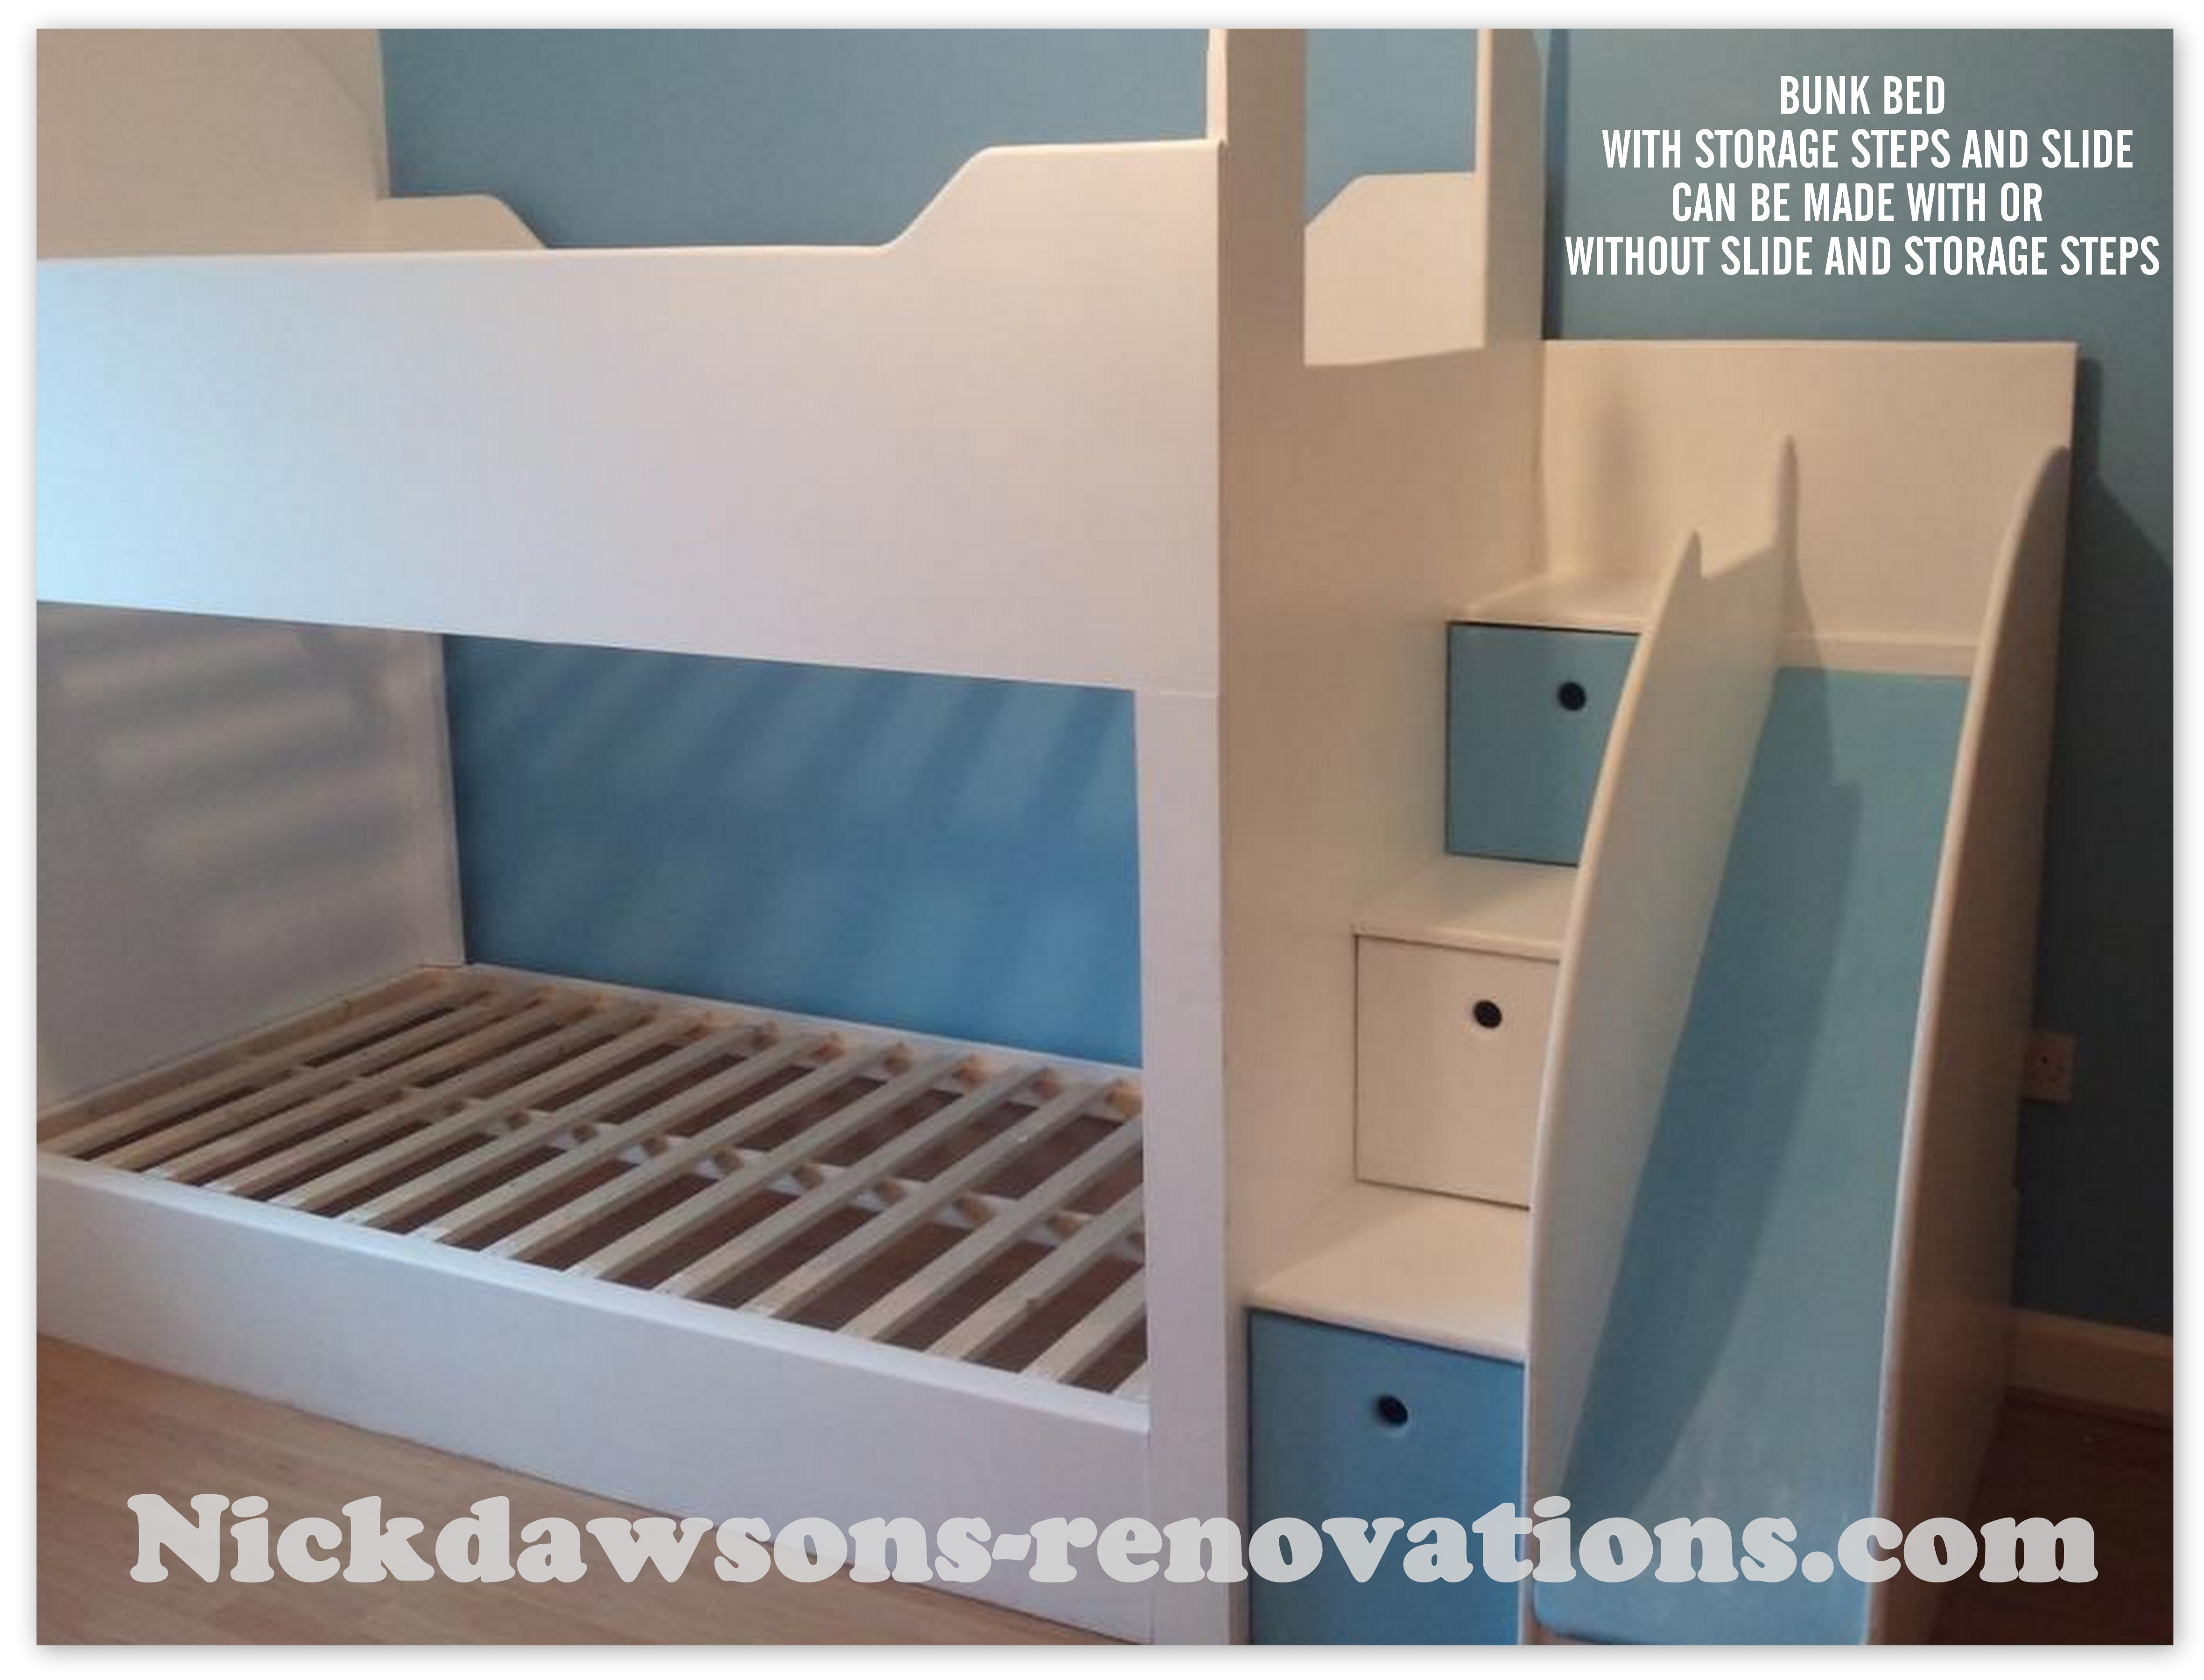 Childrens Beds With Pull Out Bed Underneath Childrens Storage Beds Bespoke Childrens Beds